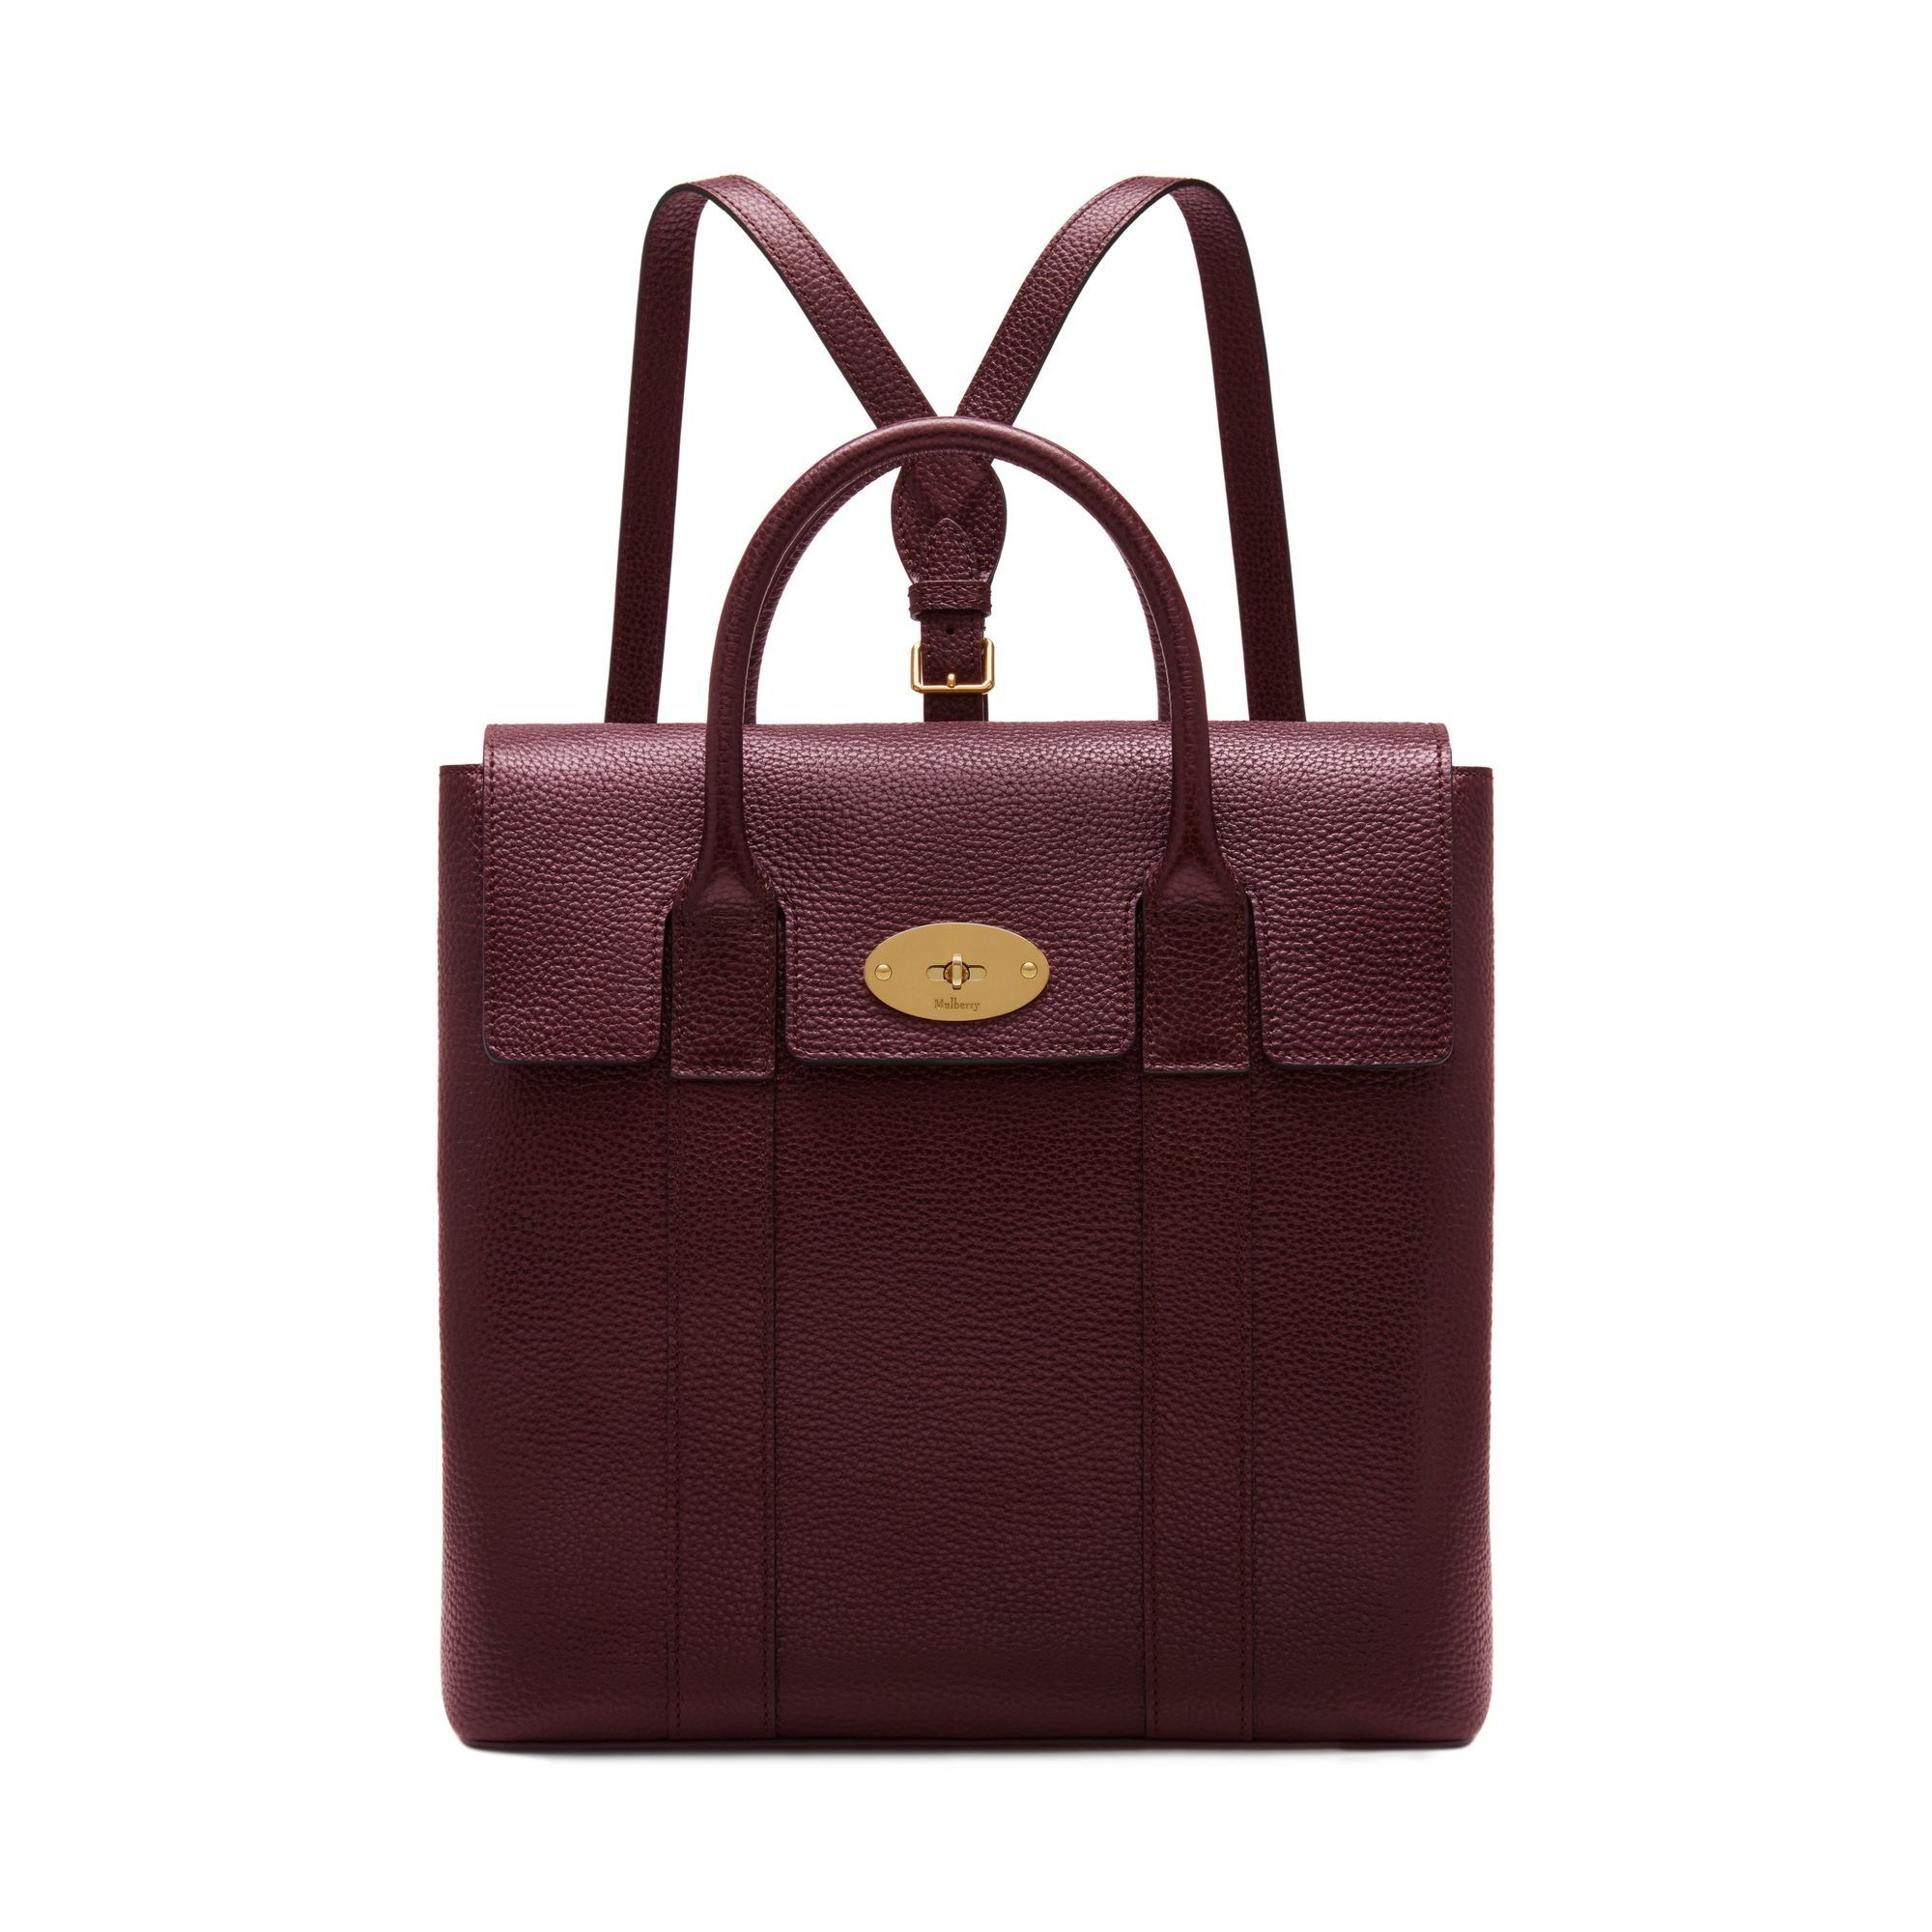 ... reduced mulberry bayswater backpack in oxblood small classic grain  d4902 f2d05 e04b21f277f33